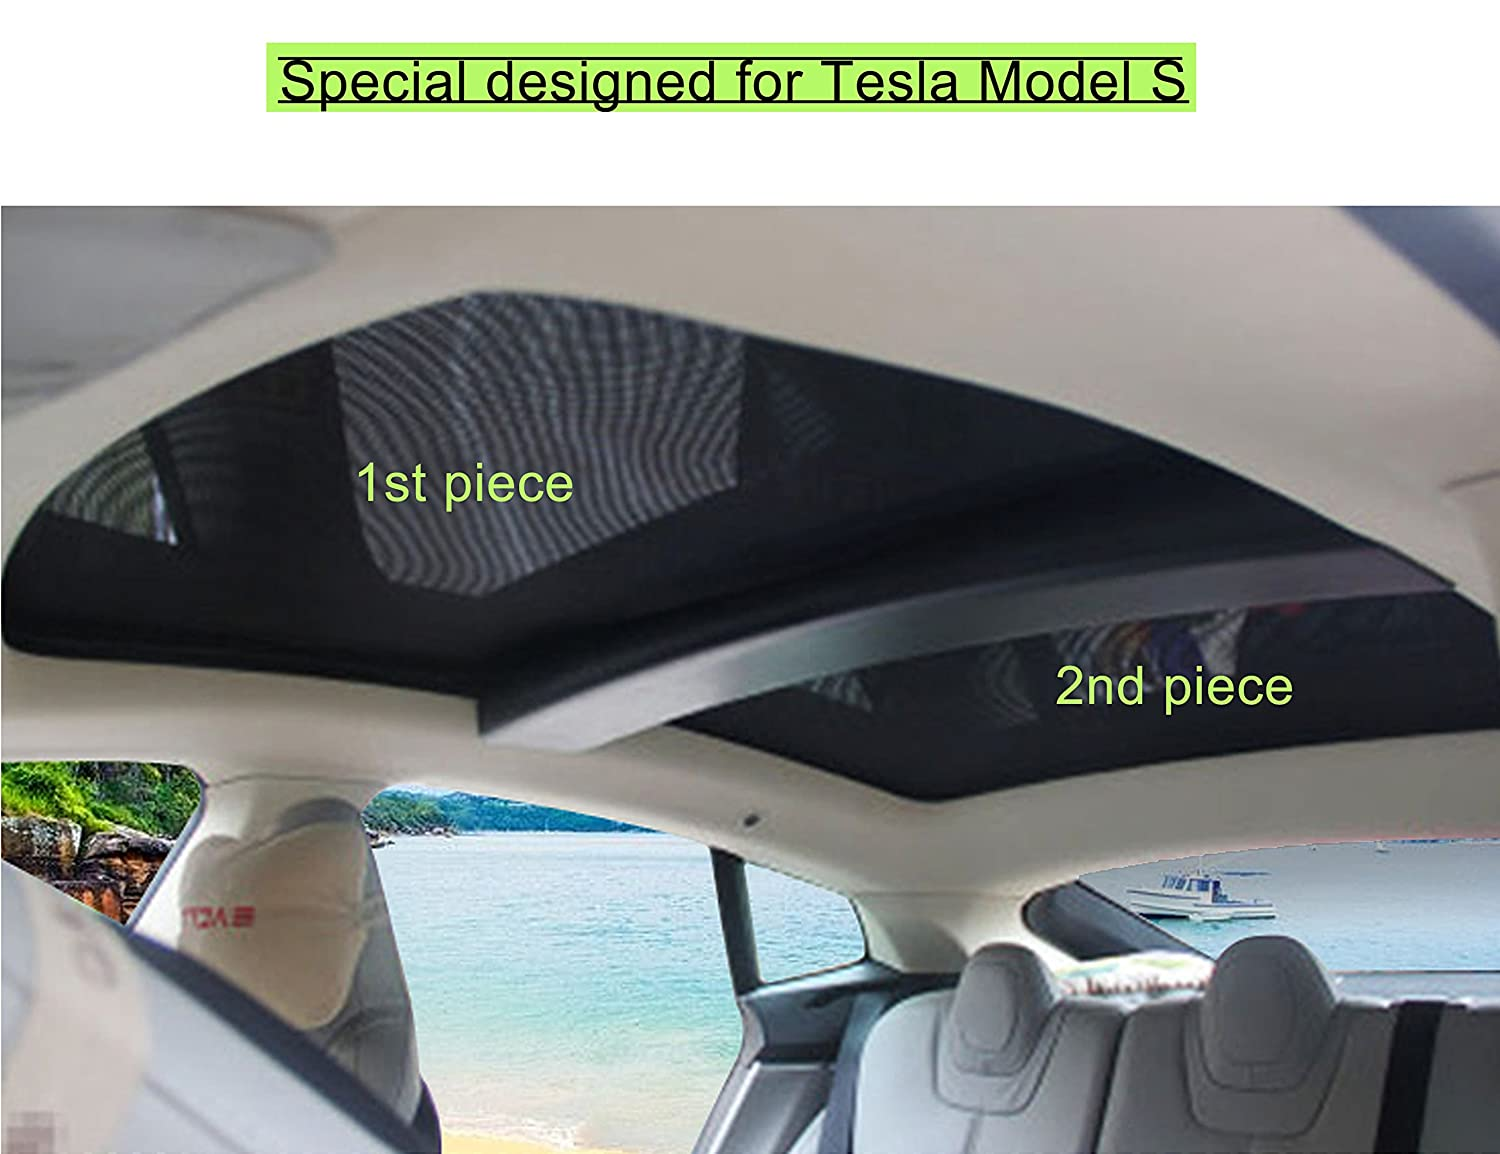 Topfit Sunroof Sunshade, Includes 2 Pieces FITTOP